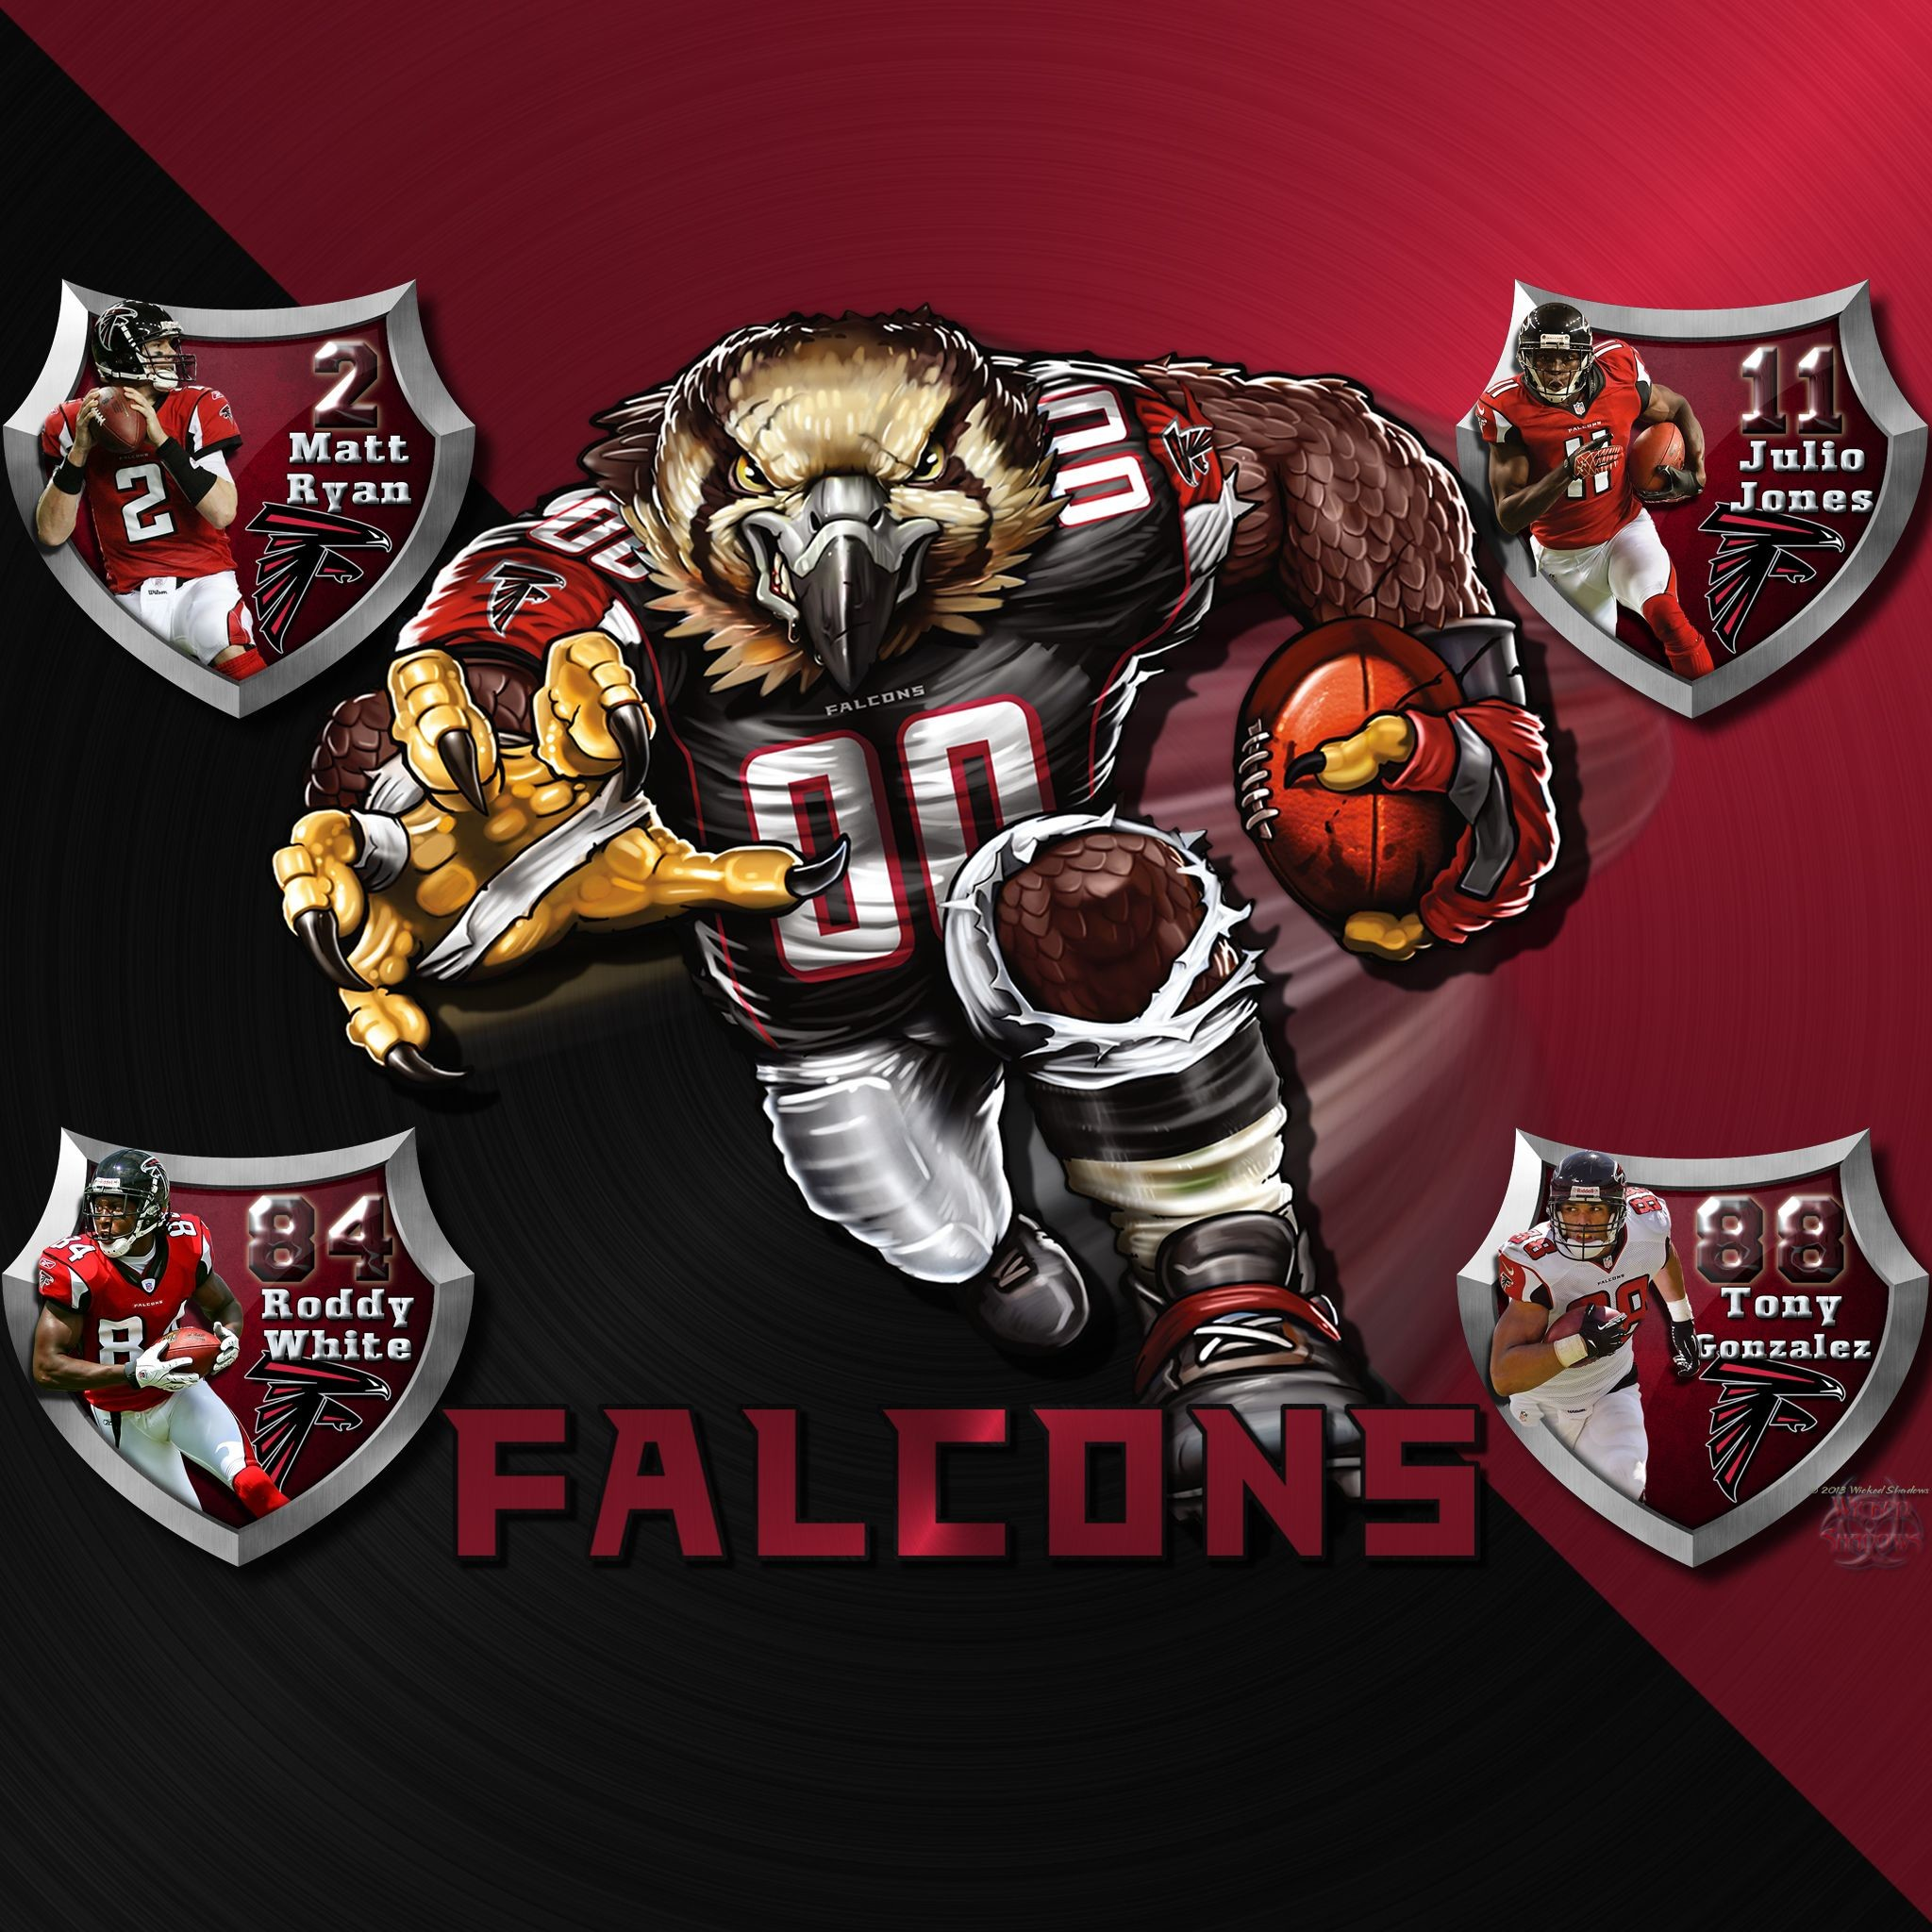 2048x2048 Atlanta Falcons Logo Wallpaper | IPhone / iPod Touch | Ipad | Android  Universal | Tablet